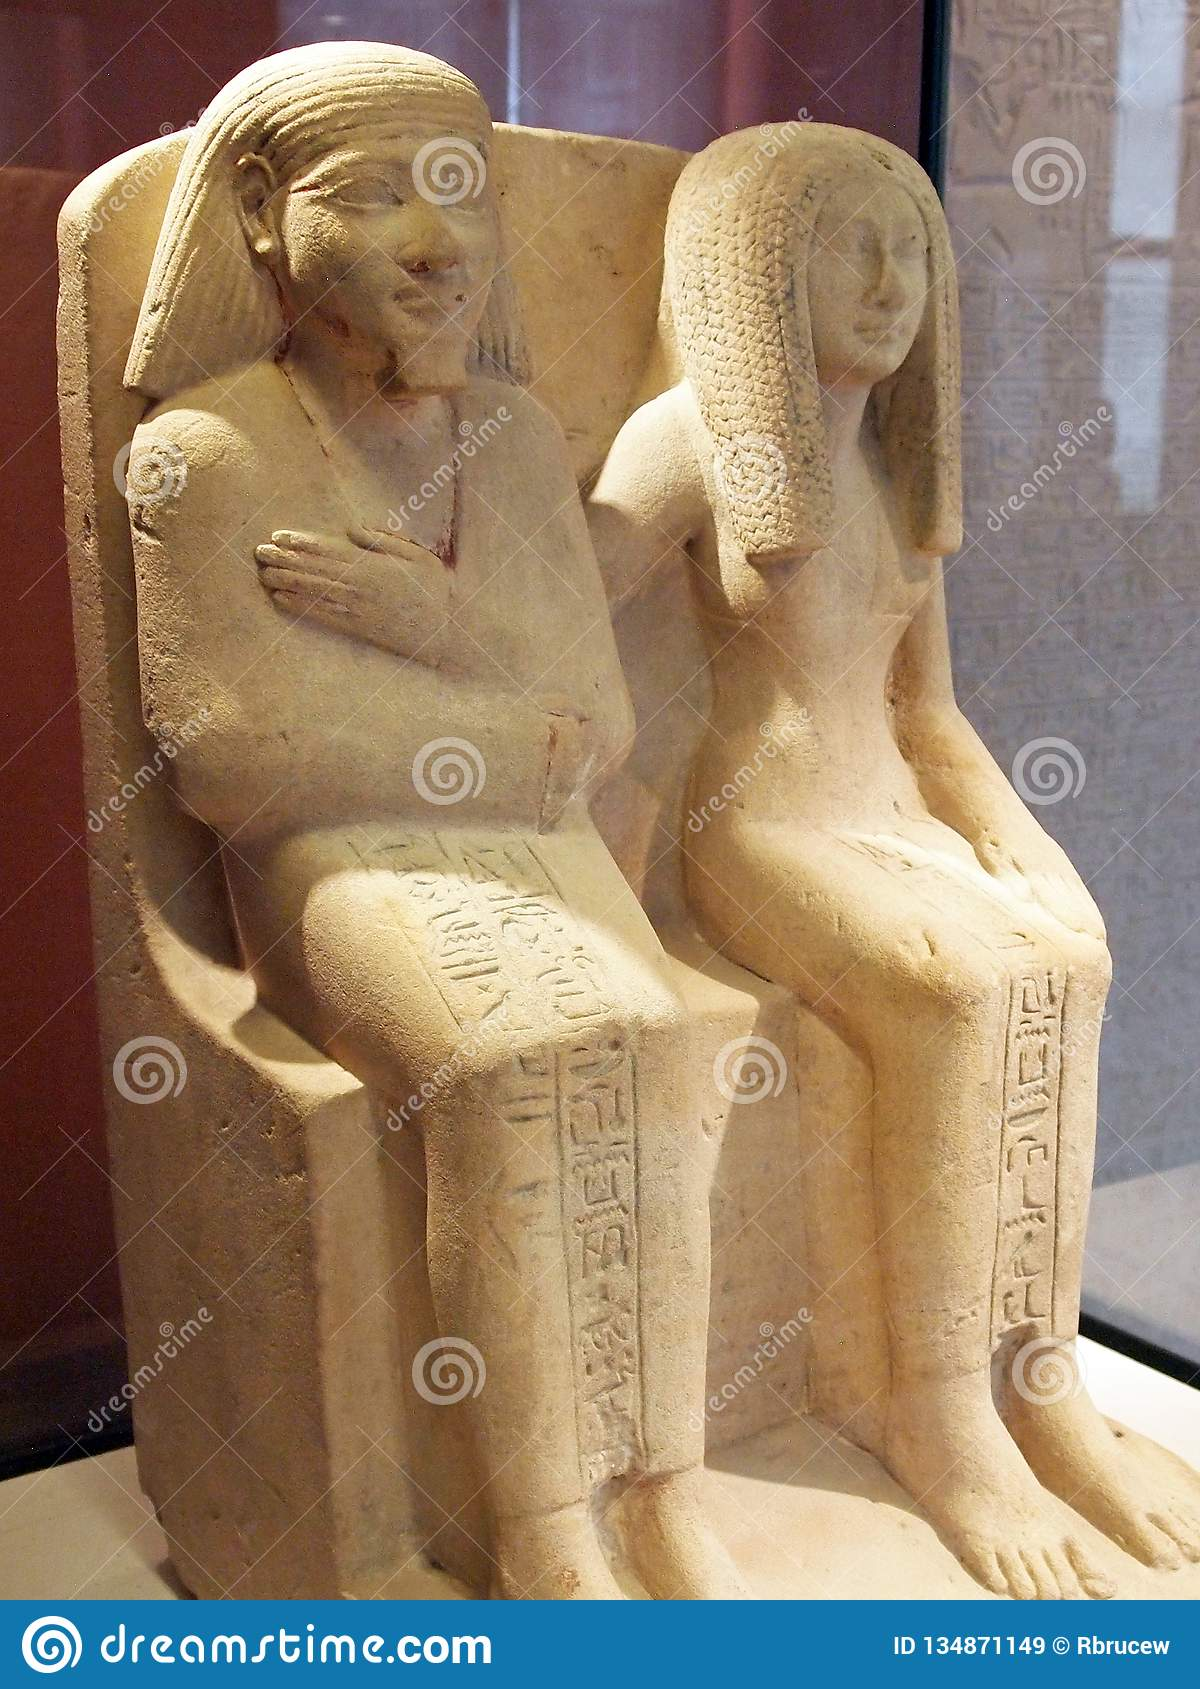 Ancient Egyptian Stone Statues, Seated Male and Female, Louvre Museum, Paris, France